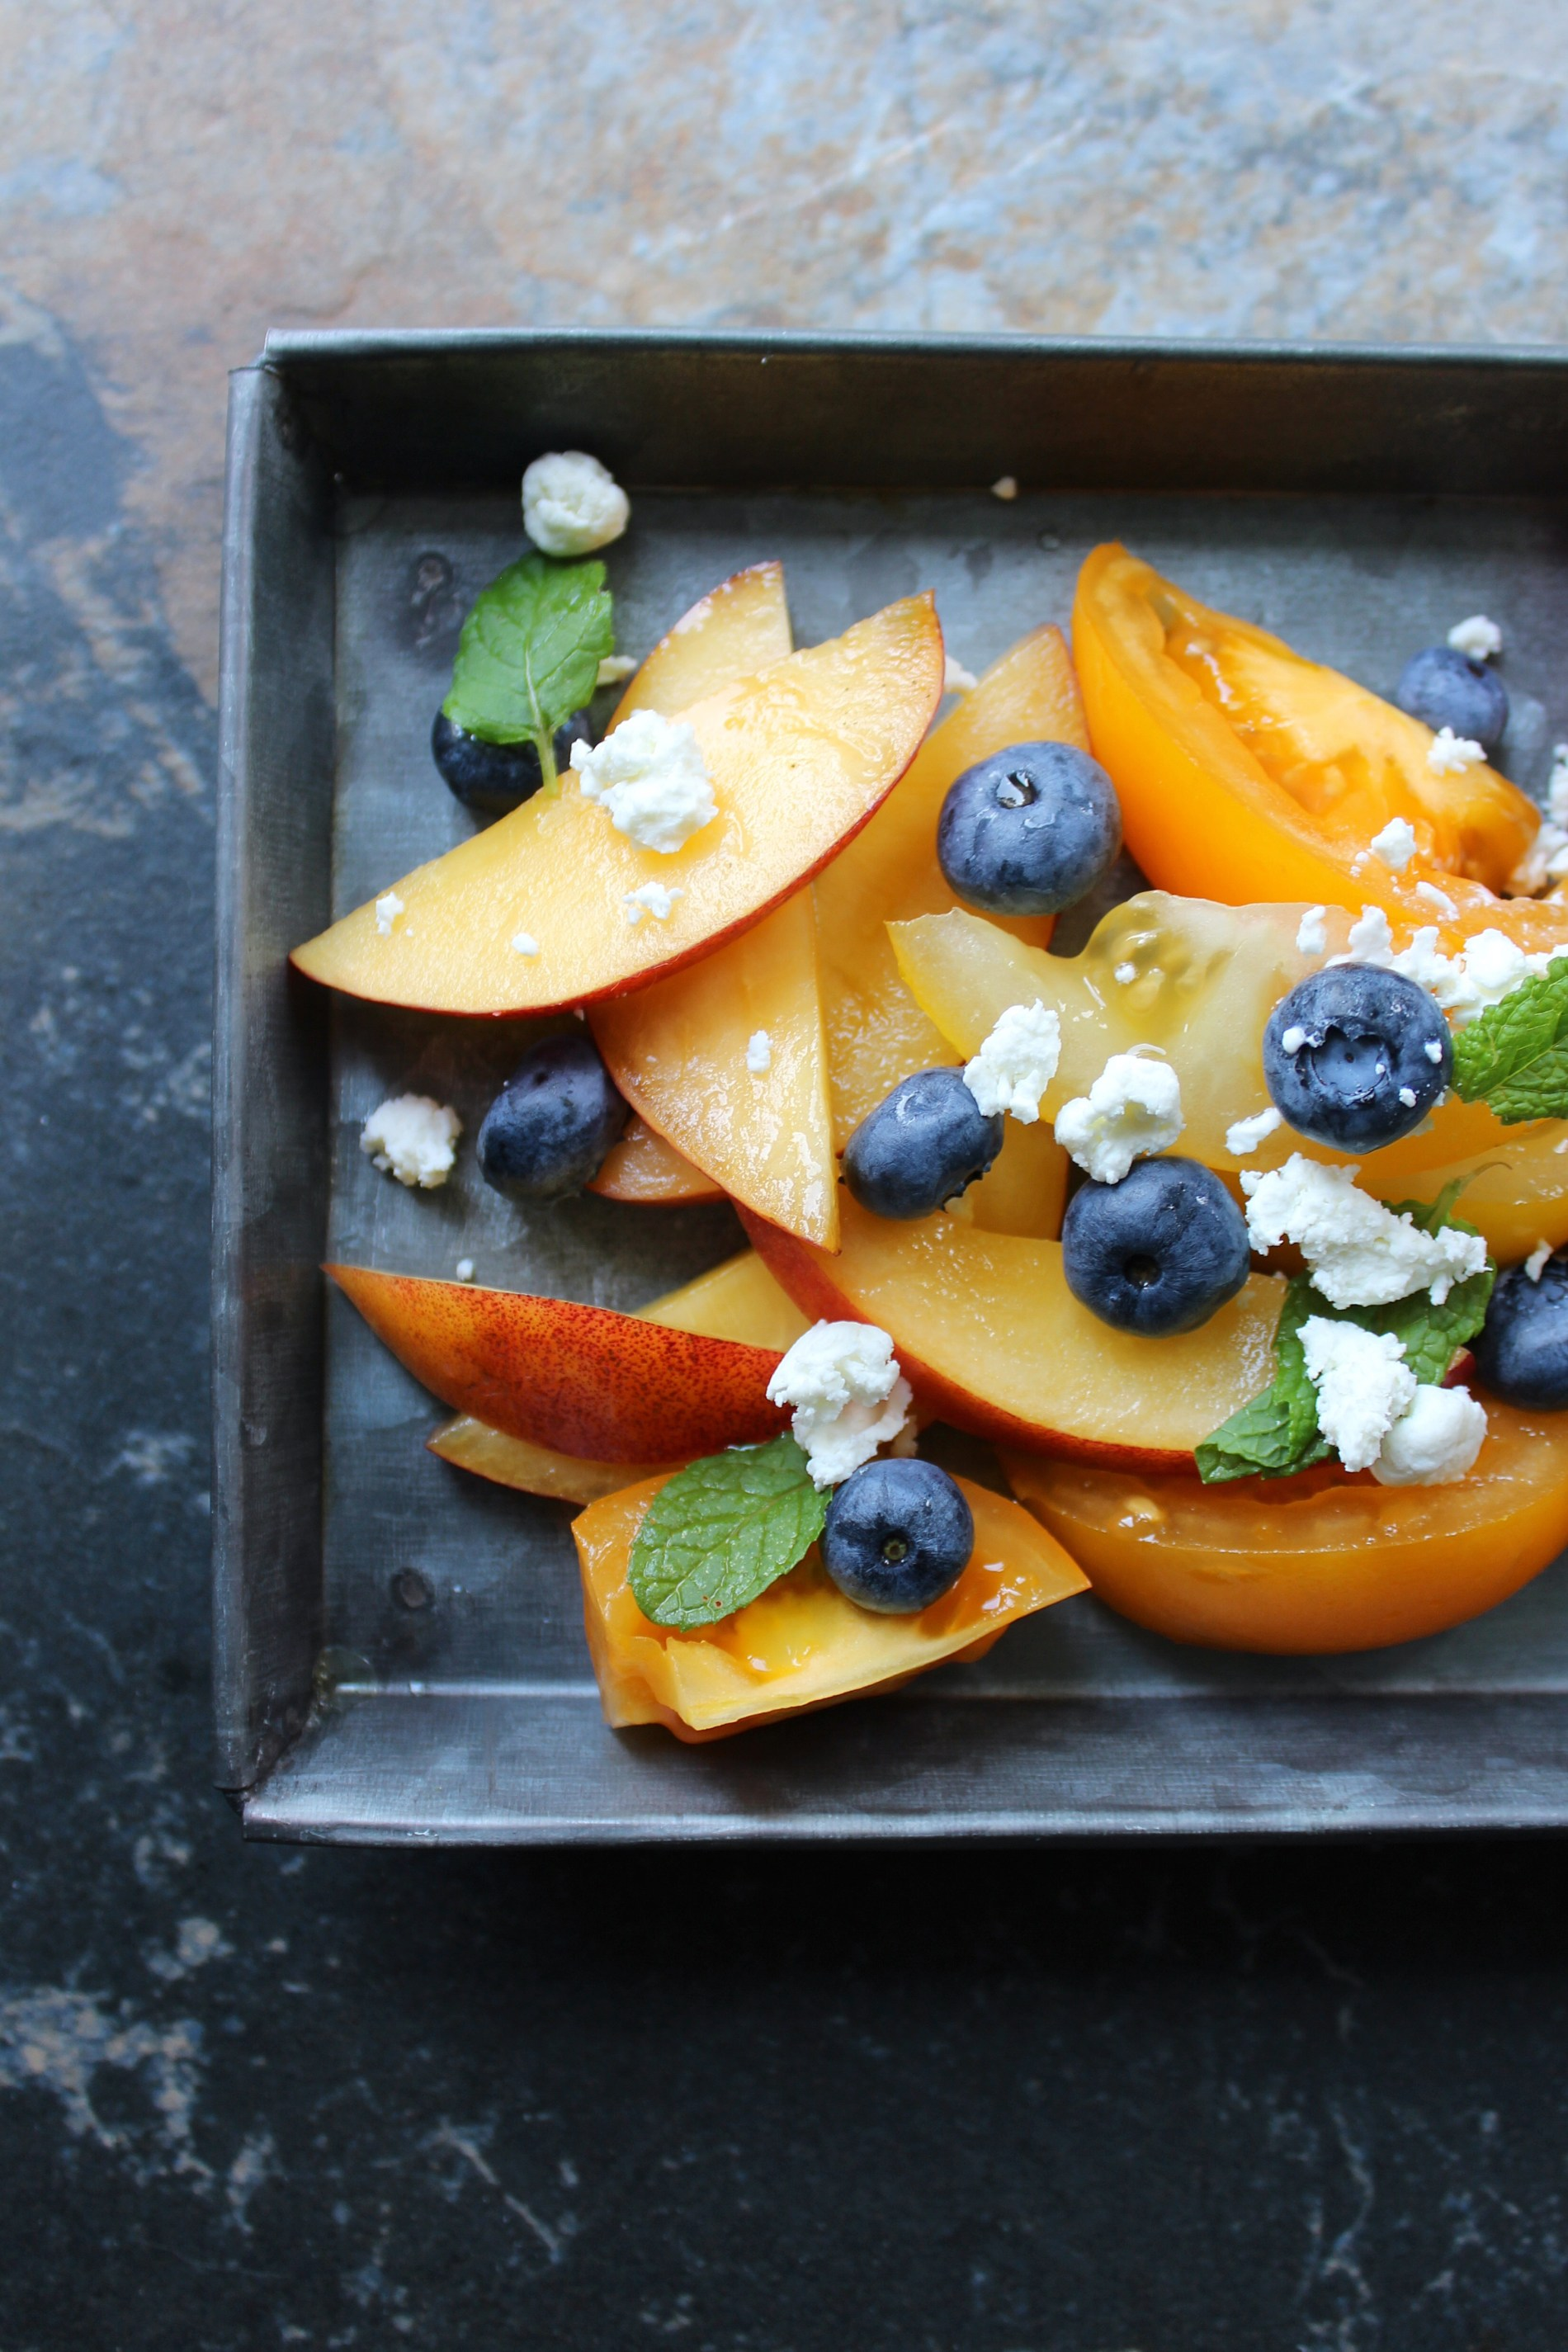 Blueberry, Tomato, Nectarine Salad with fresh mint and goat cheese